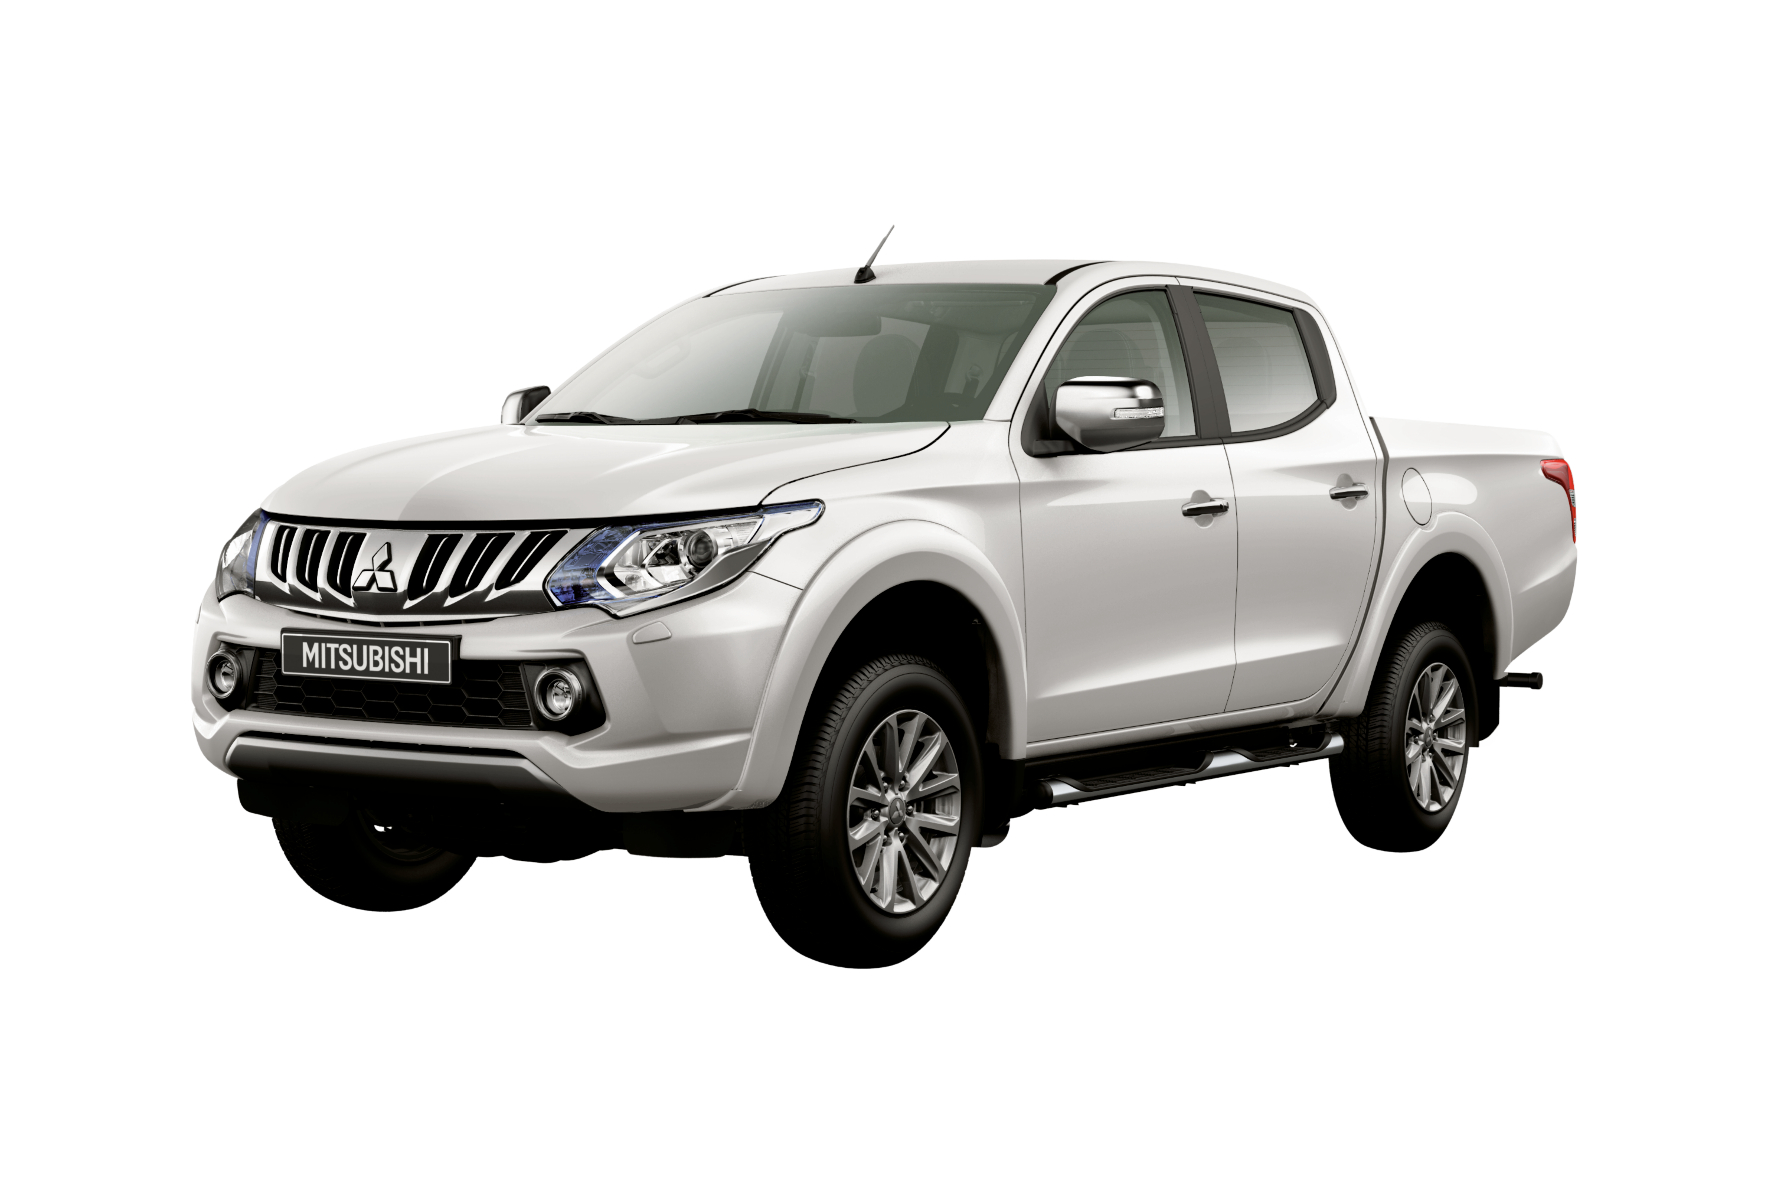 2019 Mitsubishi L200 Double Cab photo - 4